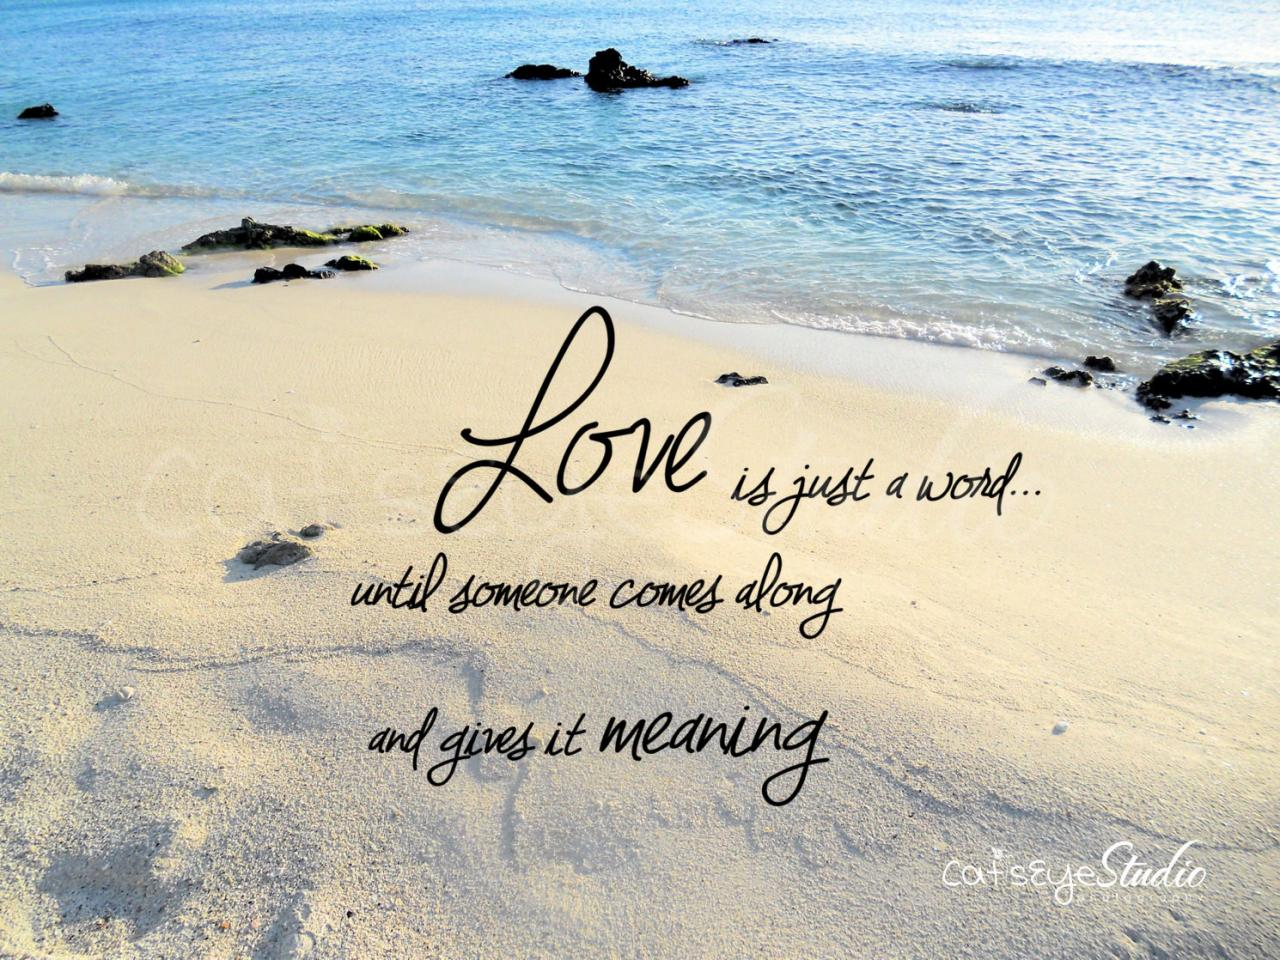 Beach Wedding Quotes Unique Love Quotes For The Beach Beach Wedding Love Quotes Quotesgram